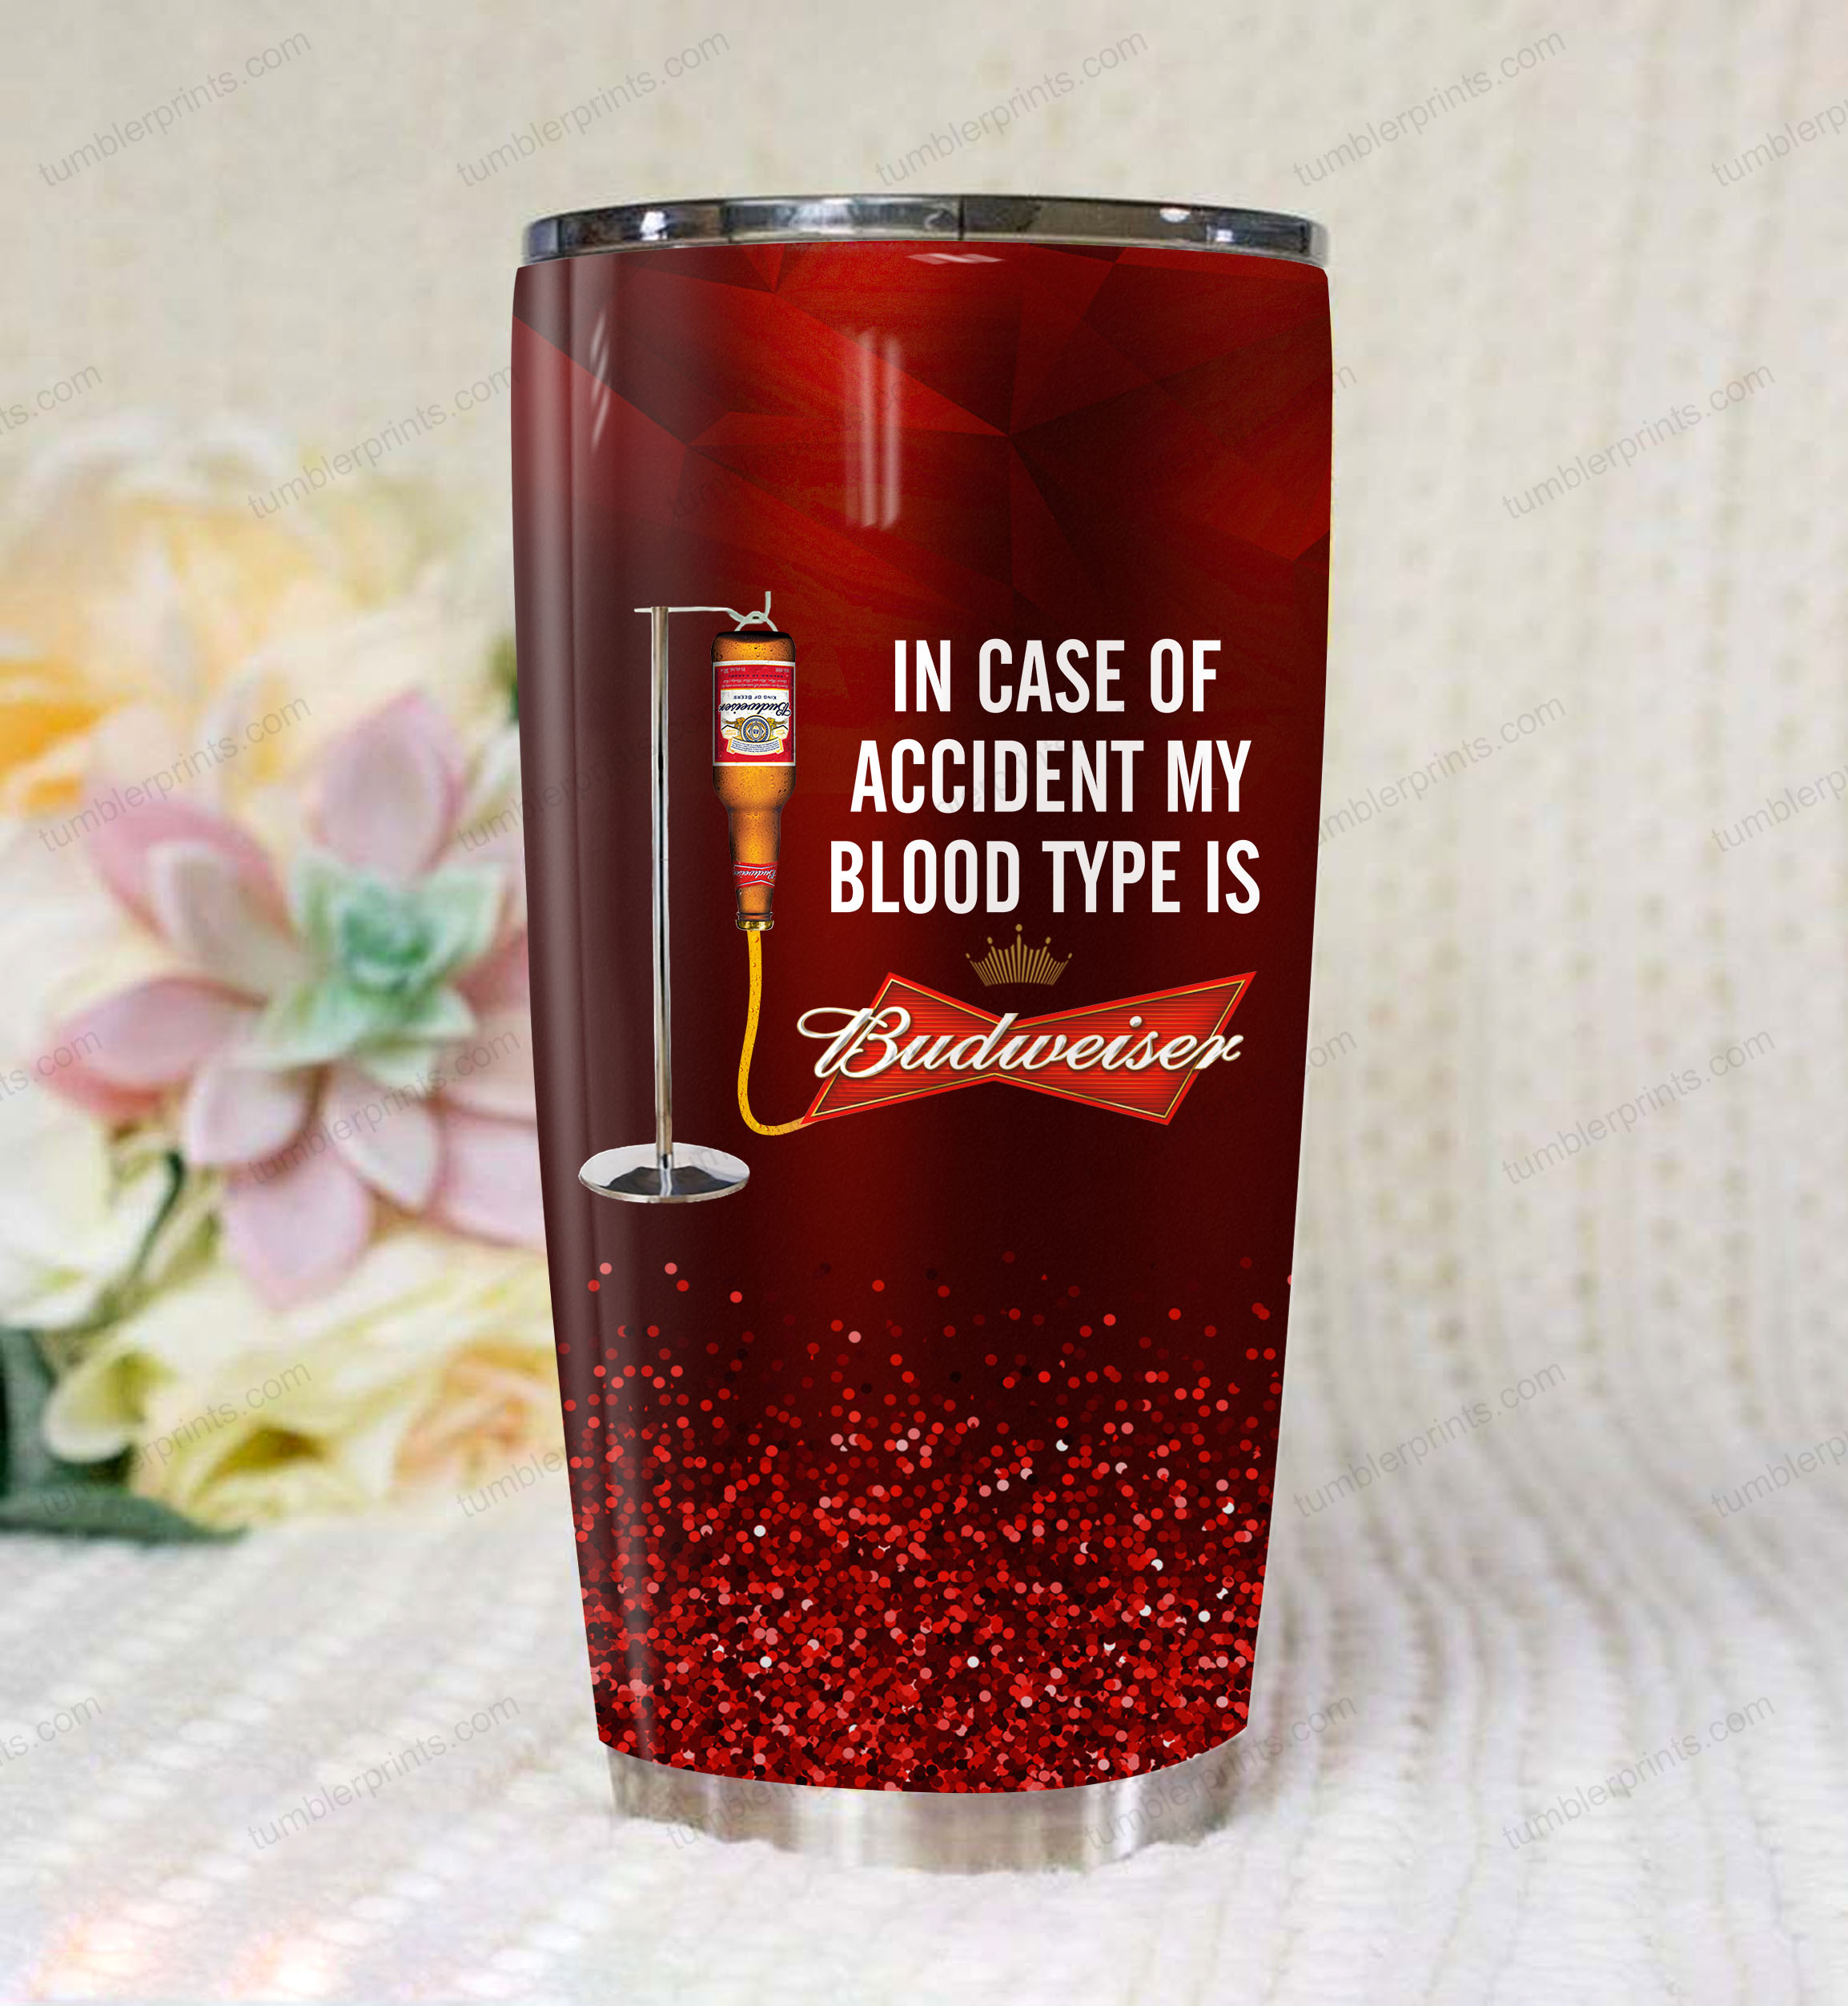 In case of an accident my blood type is budweiser full printing tumbler 4